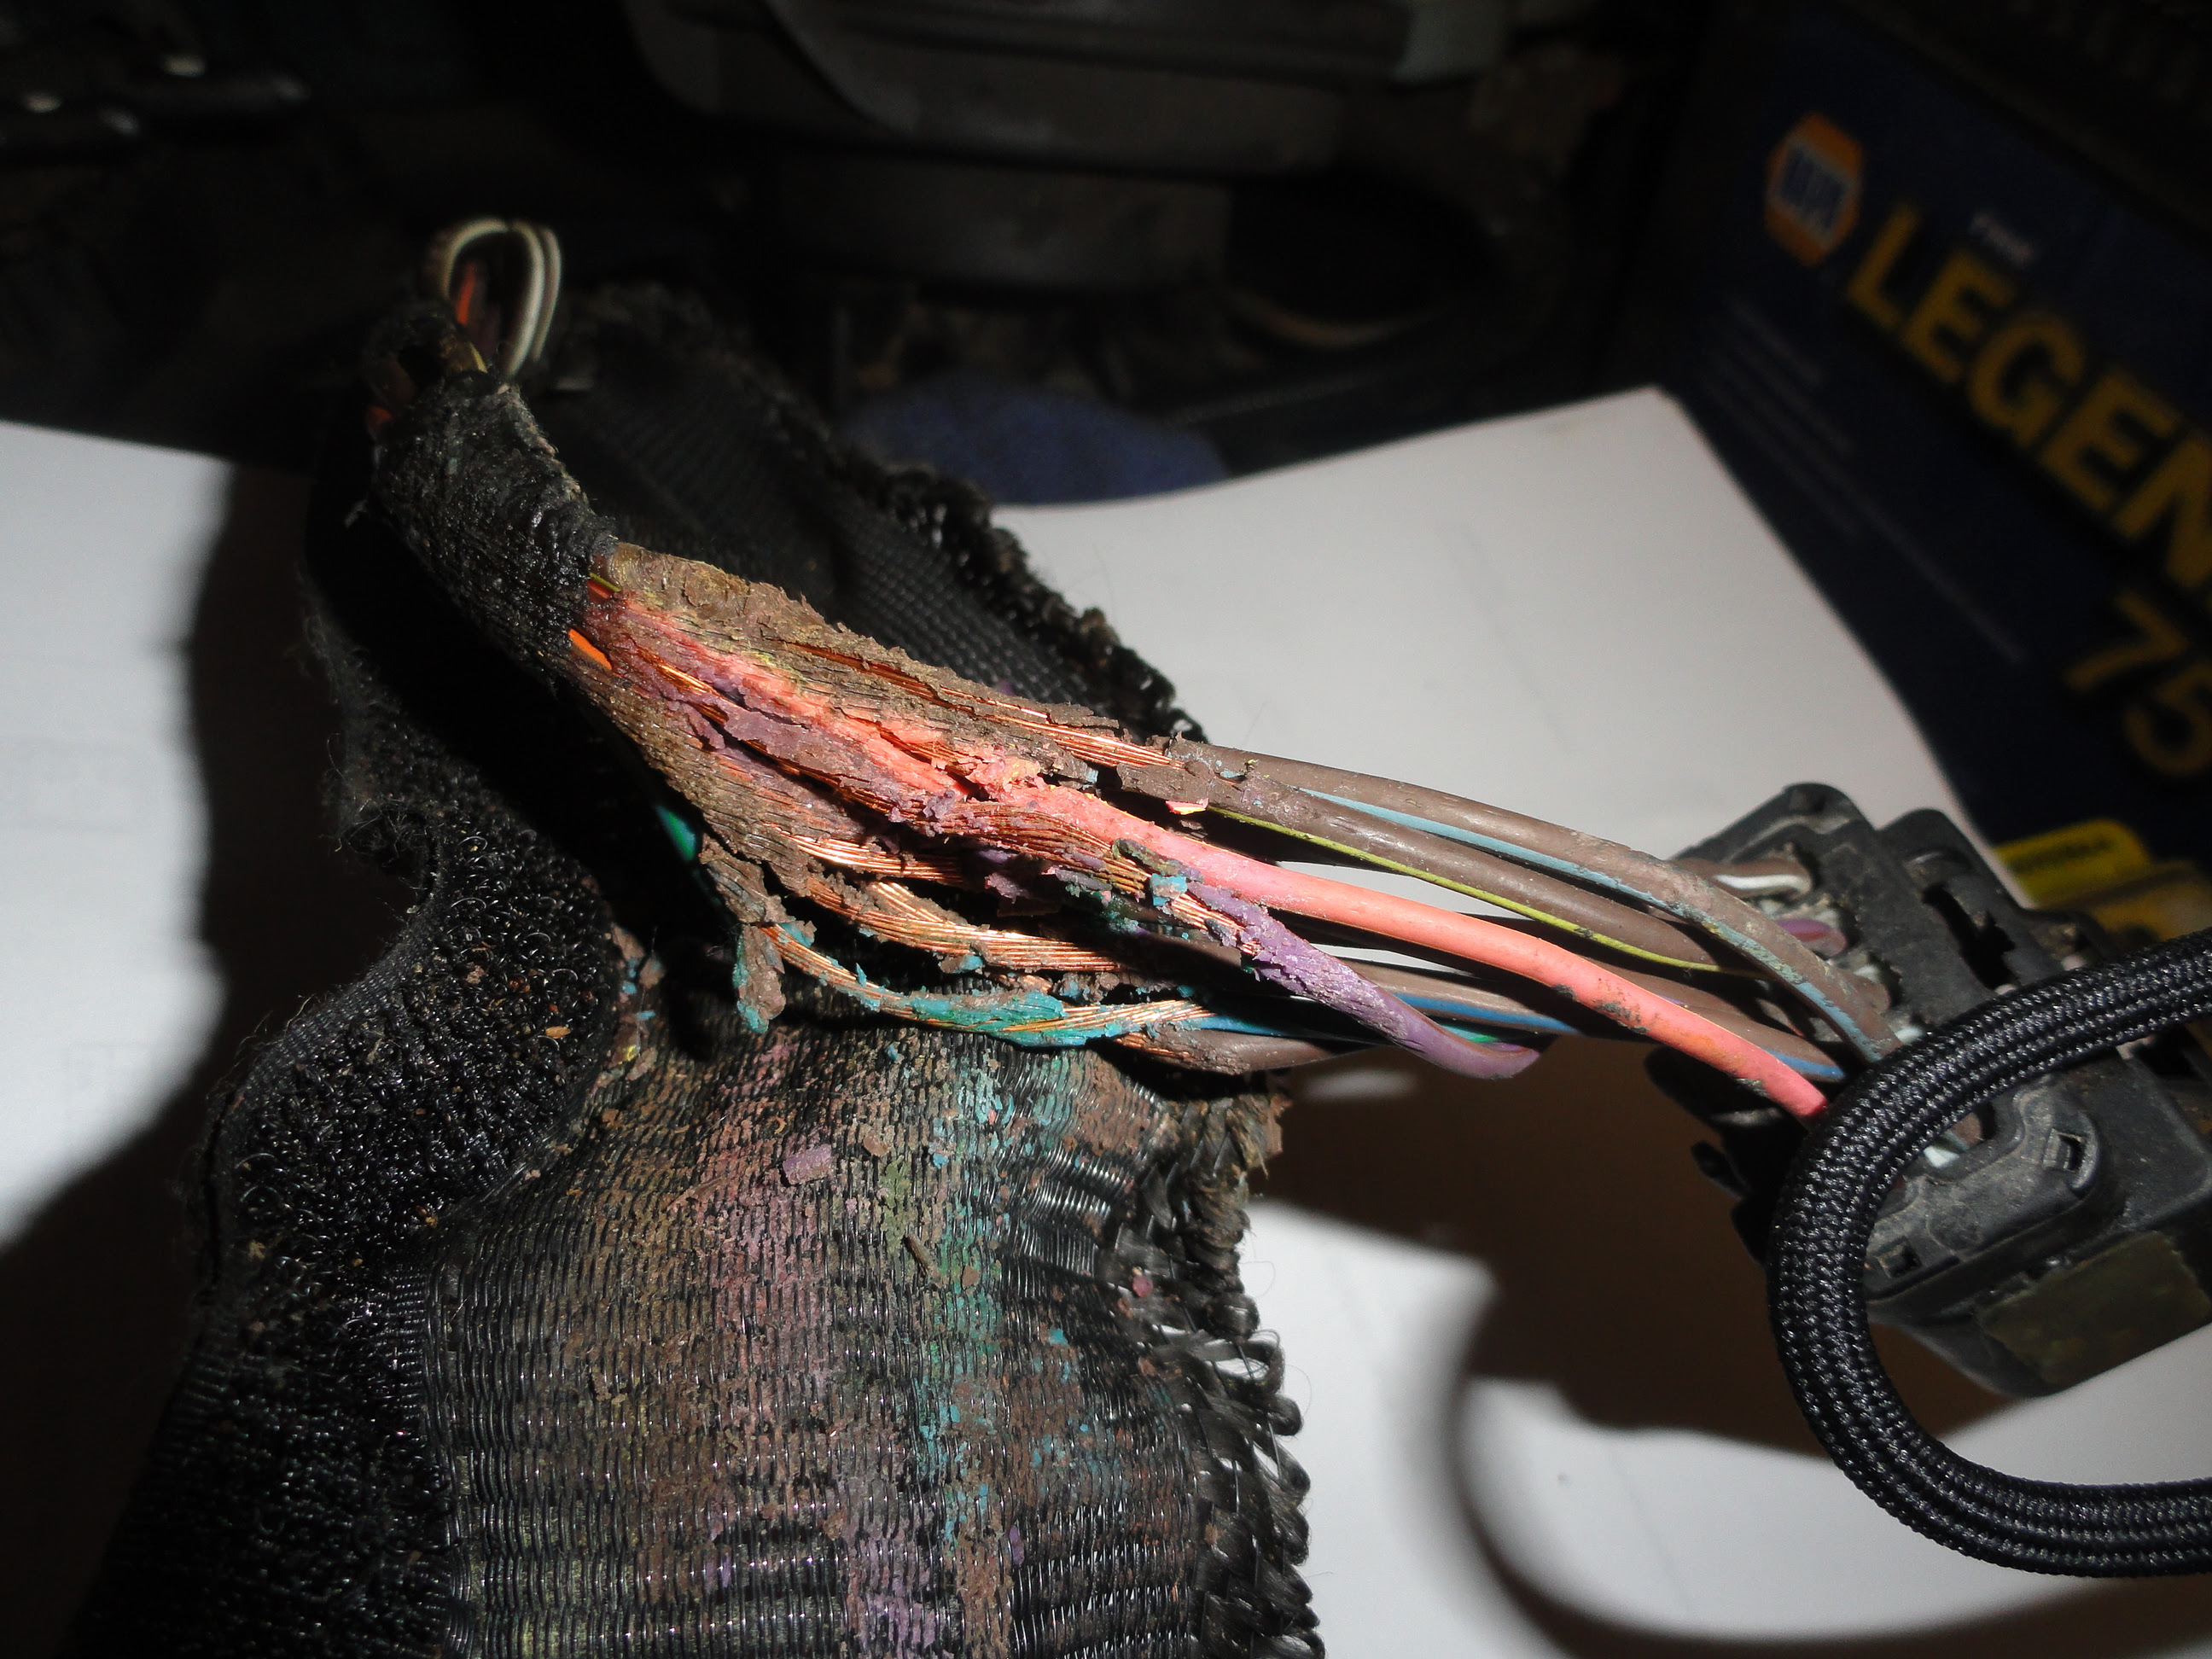 automotive wiring harness melted image 10